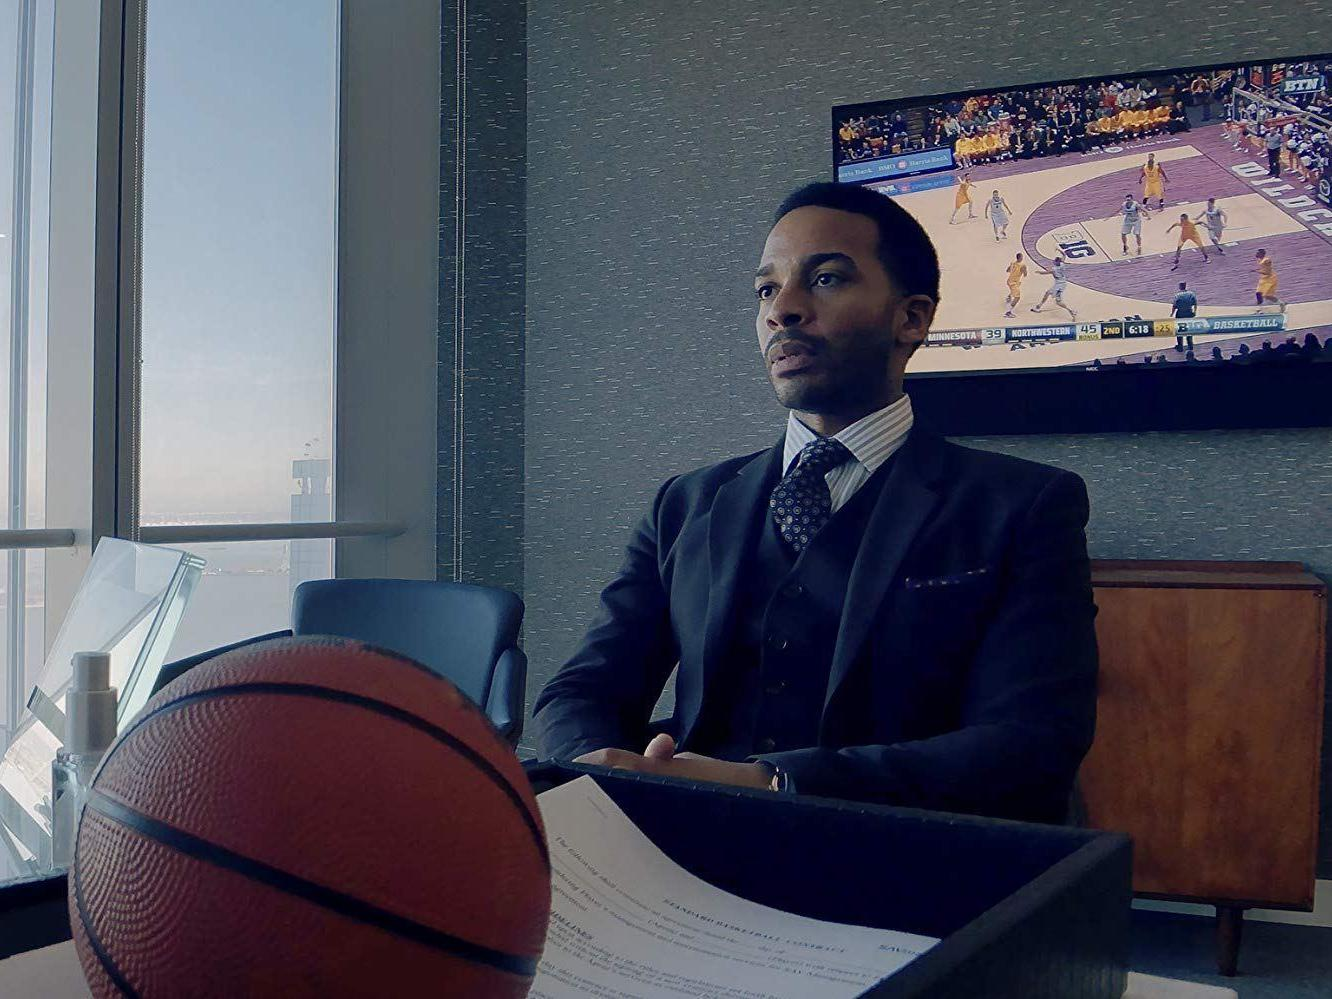 High Flying Bird review: Steven Soderbergh's Netflix drama joins the roster of passable basketball films